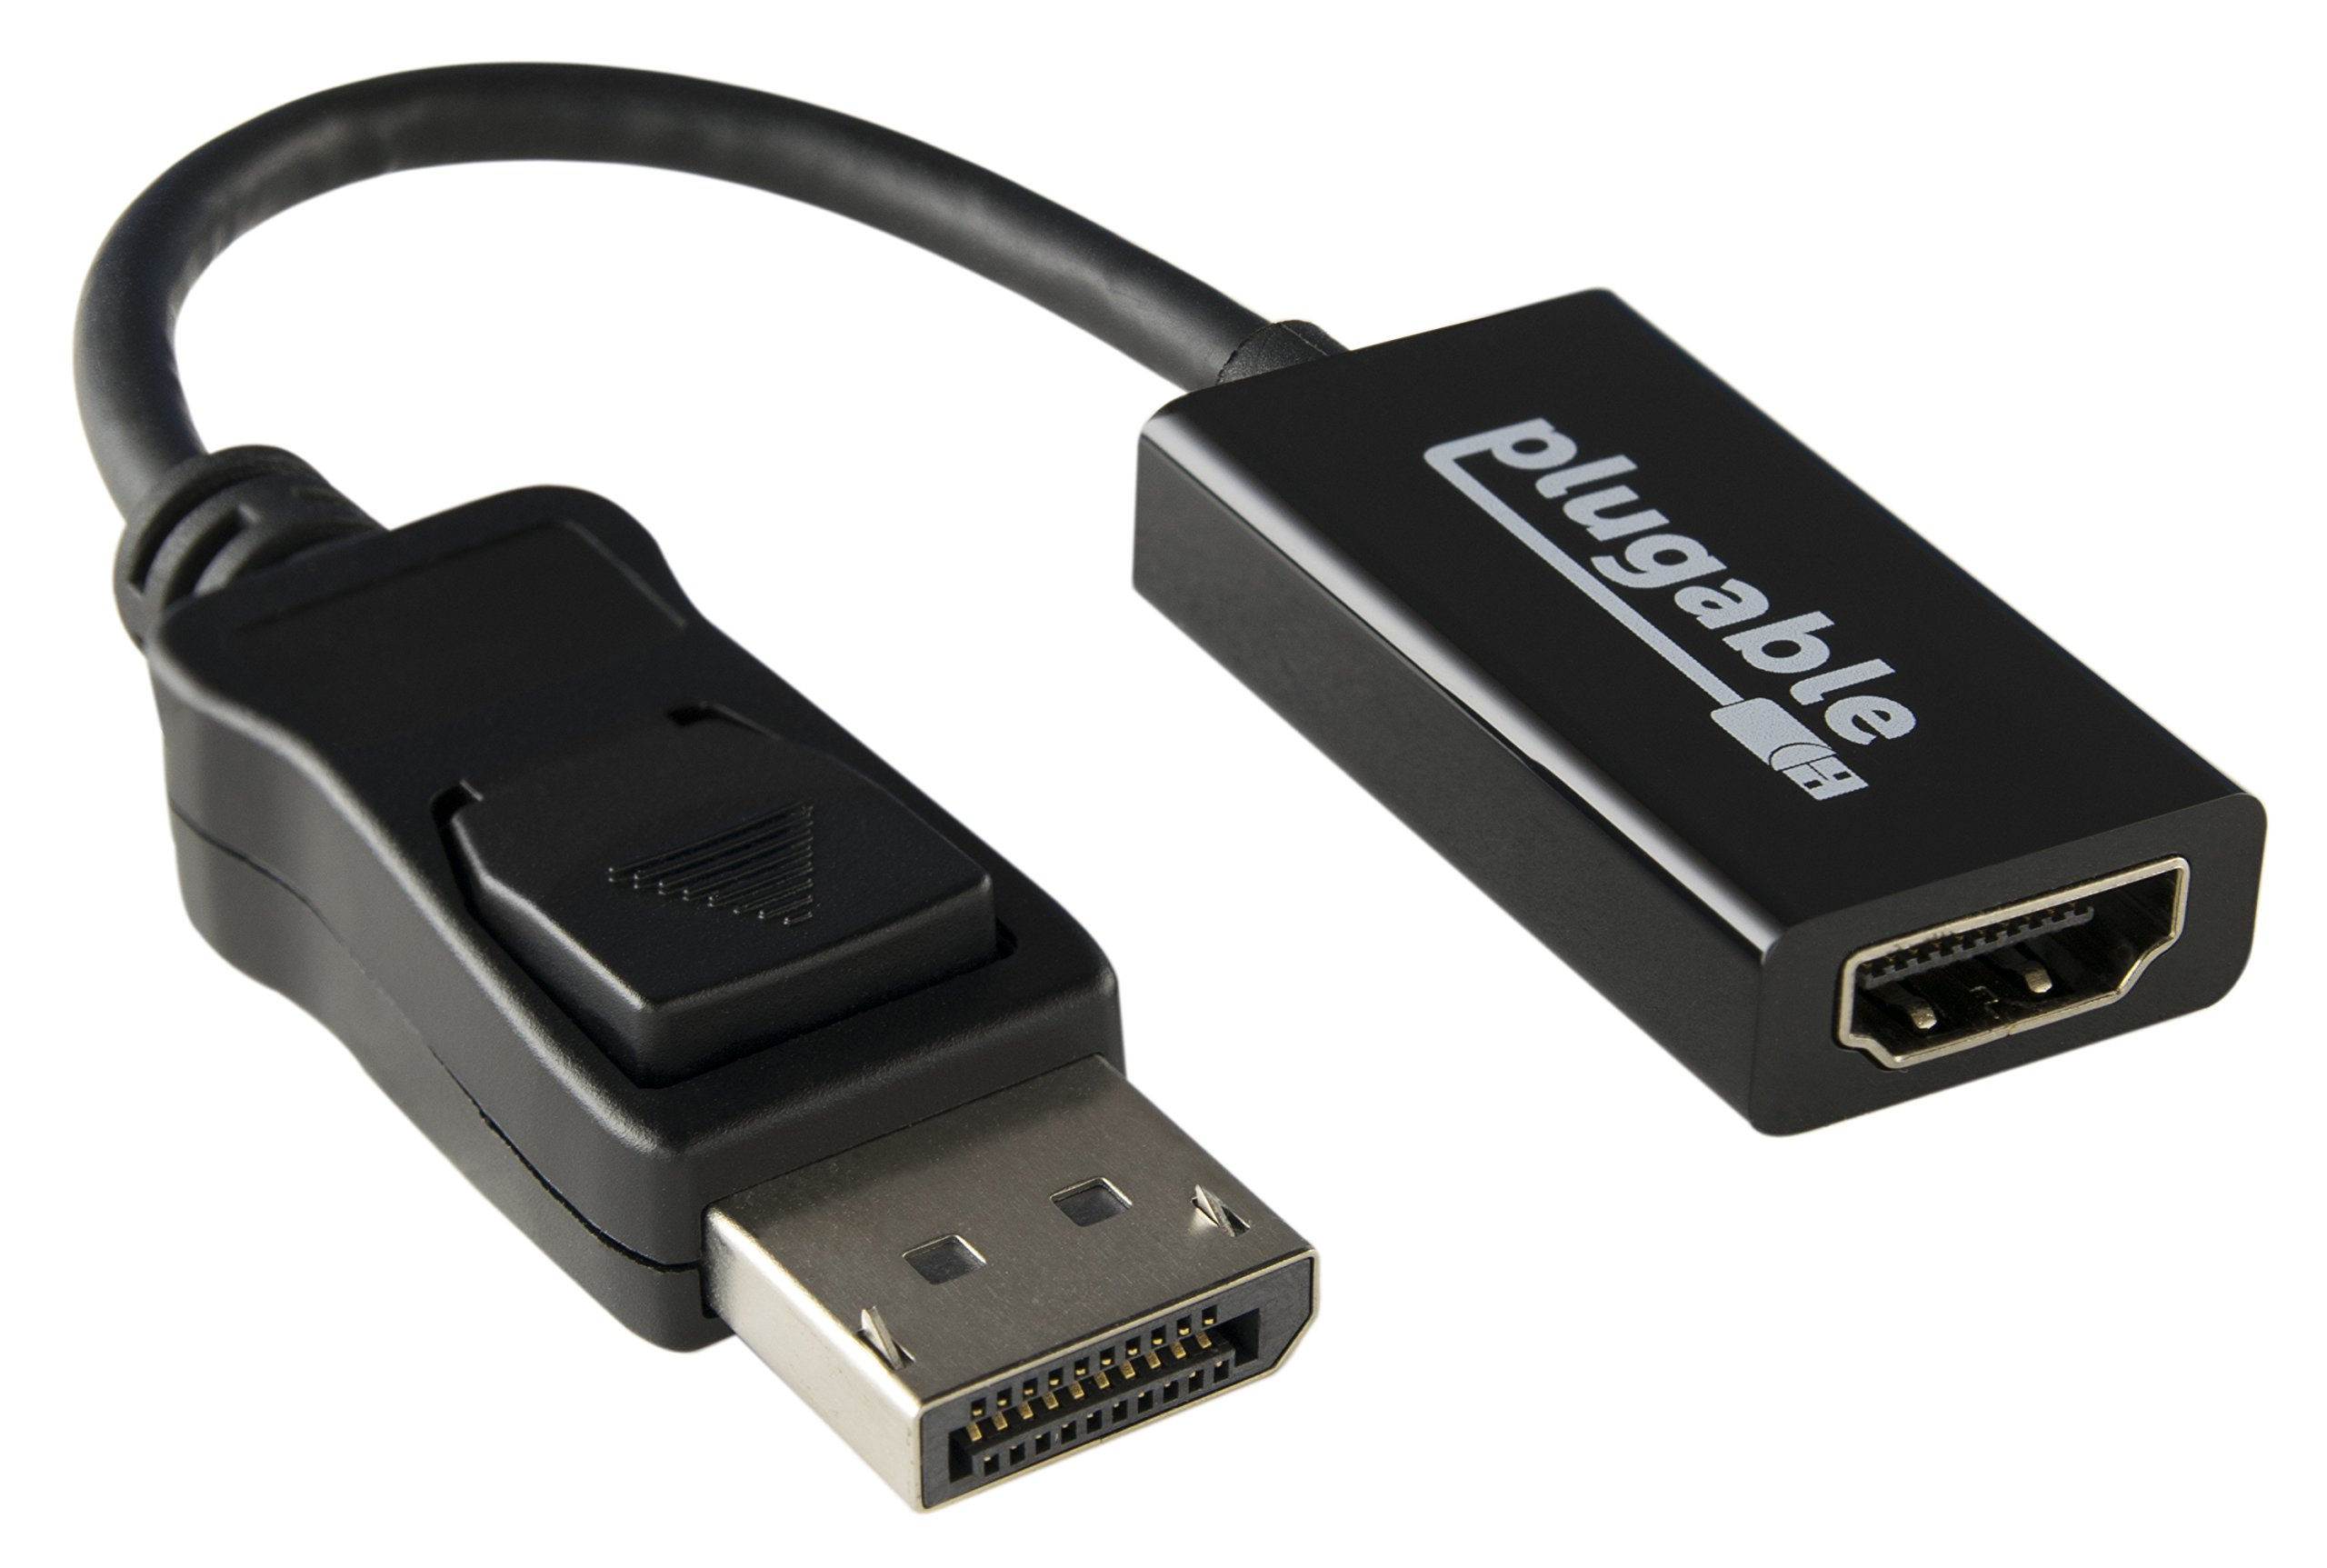 Plugable Active DisplayPort to HDMI 2.0 Adapter (Supports displays up to 4K / UHD / 3840x2160@60Hz)